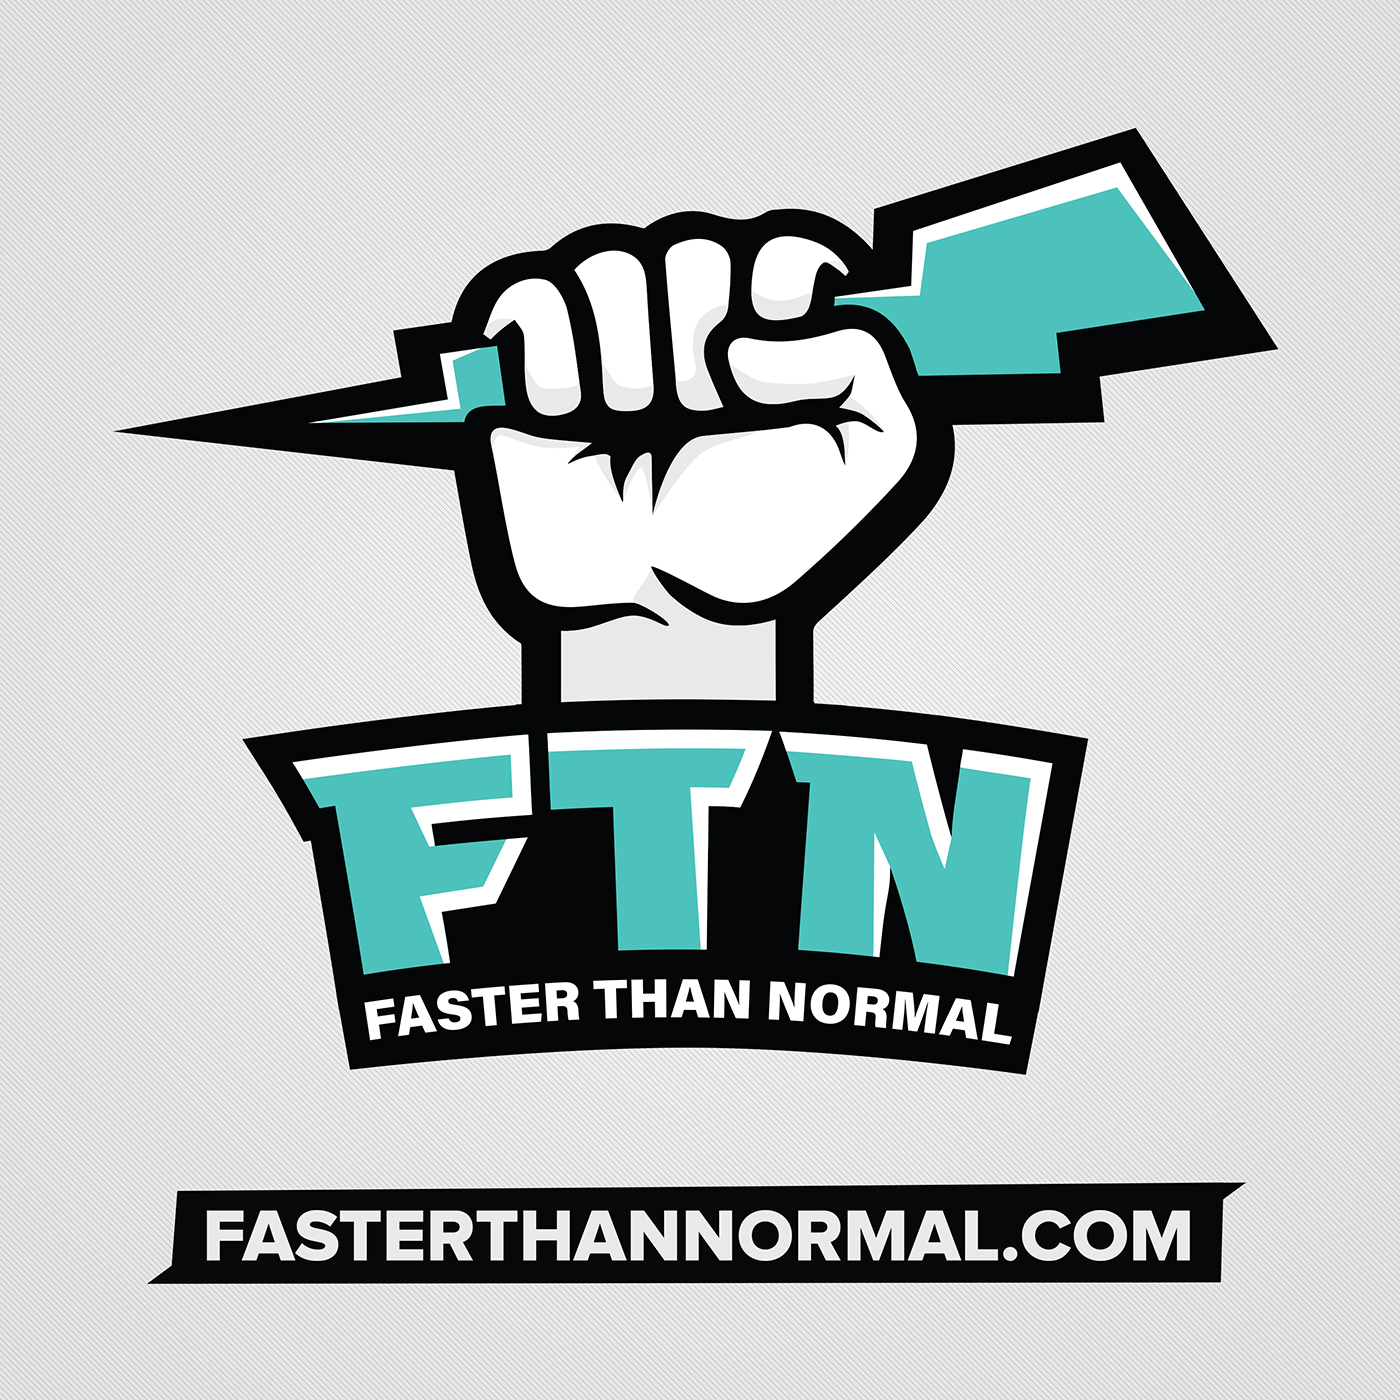 Larry's interview on The Faster Than Normal Podcast